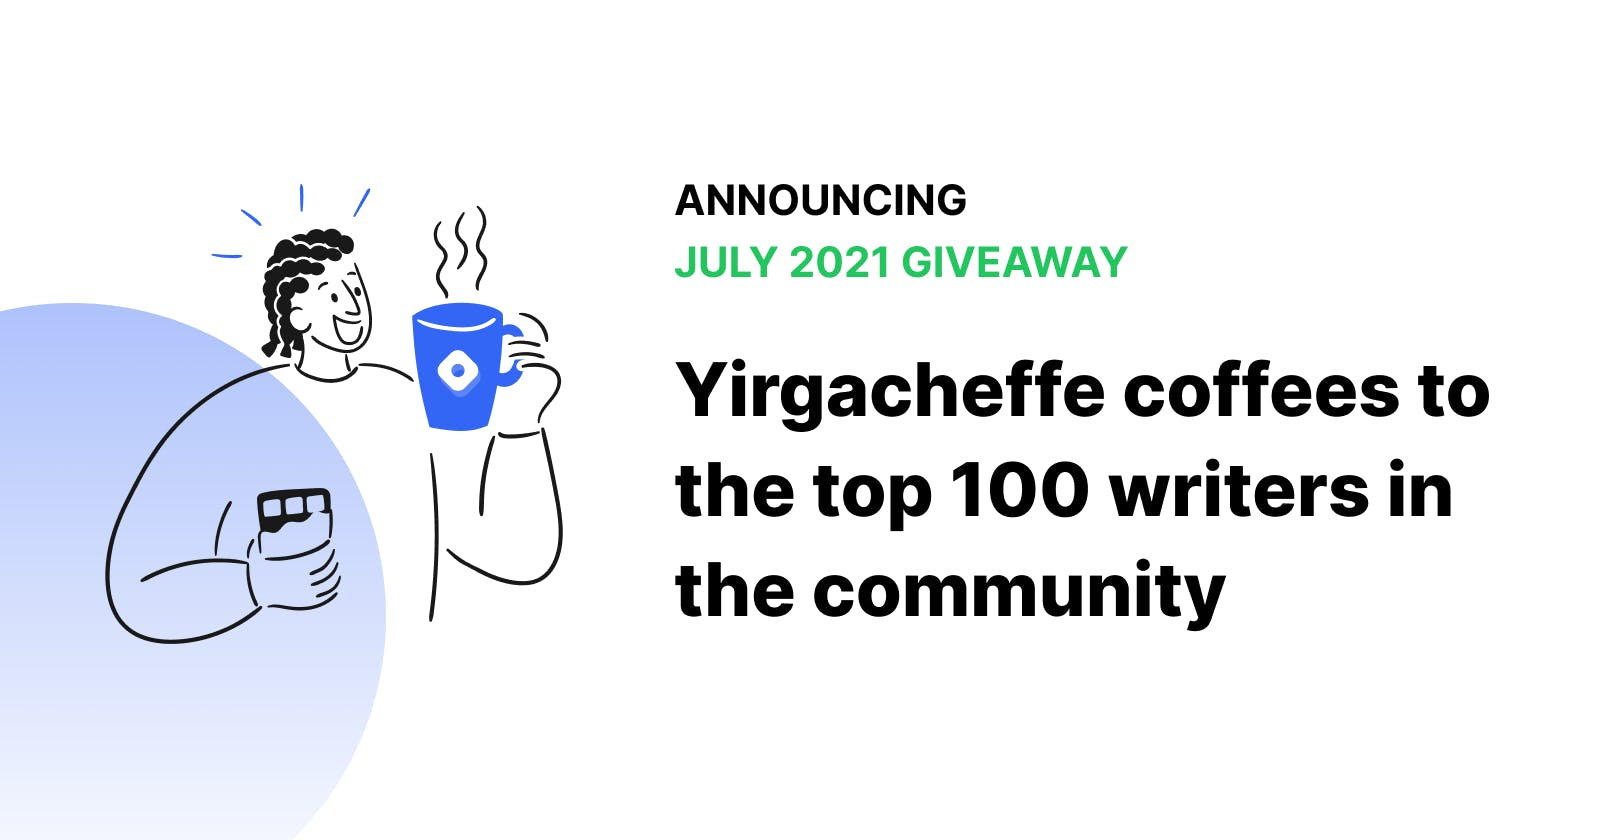 Hashnode SPECIAL July Giveaway! 🍱 ☕️ Yirgacheffe coffees to the top 100 writers in the community.